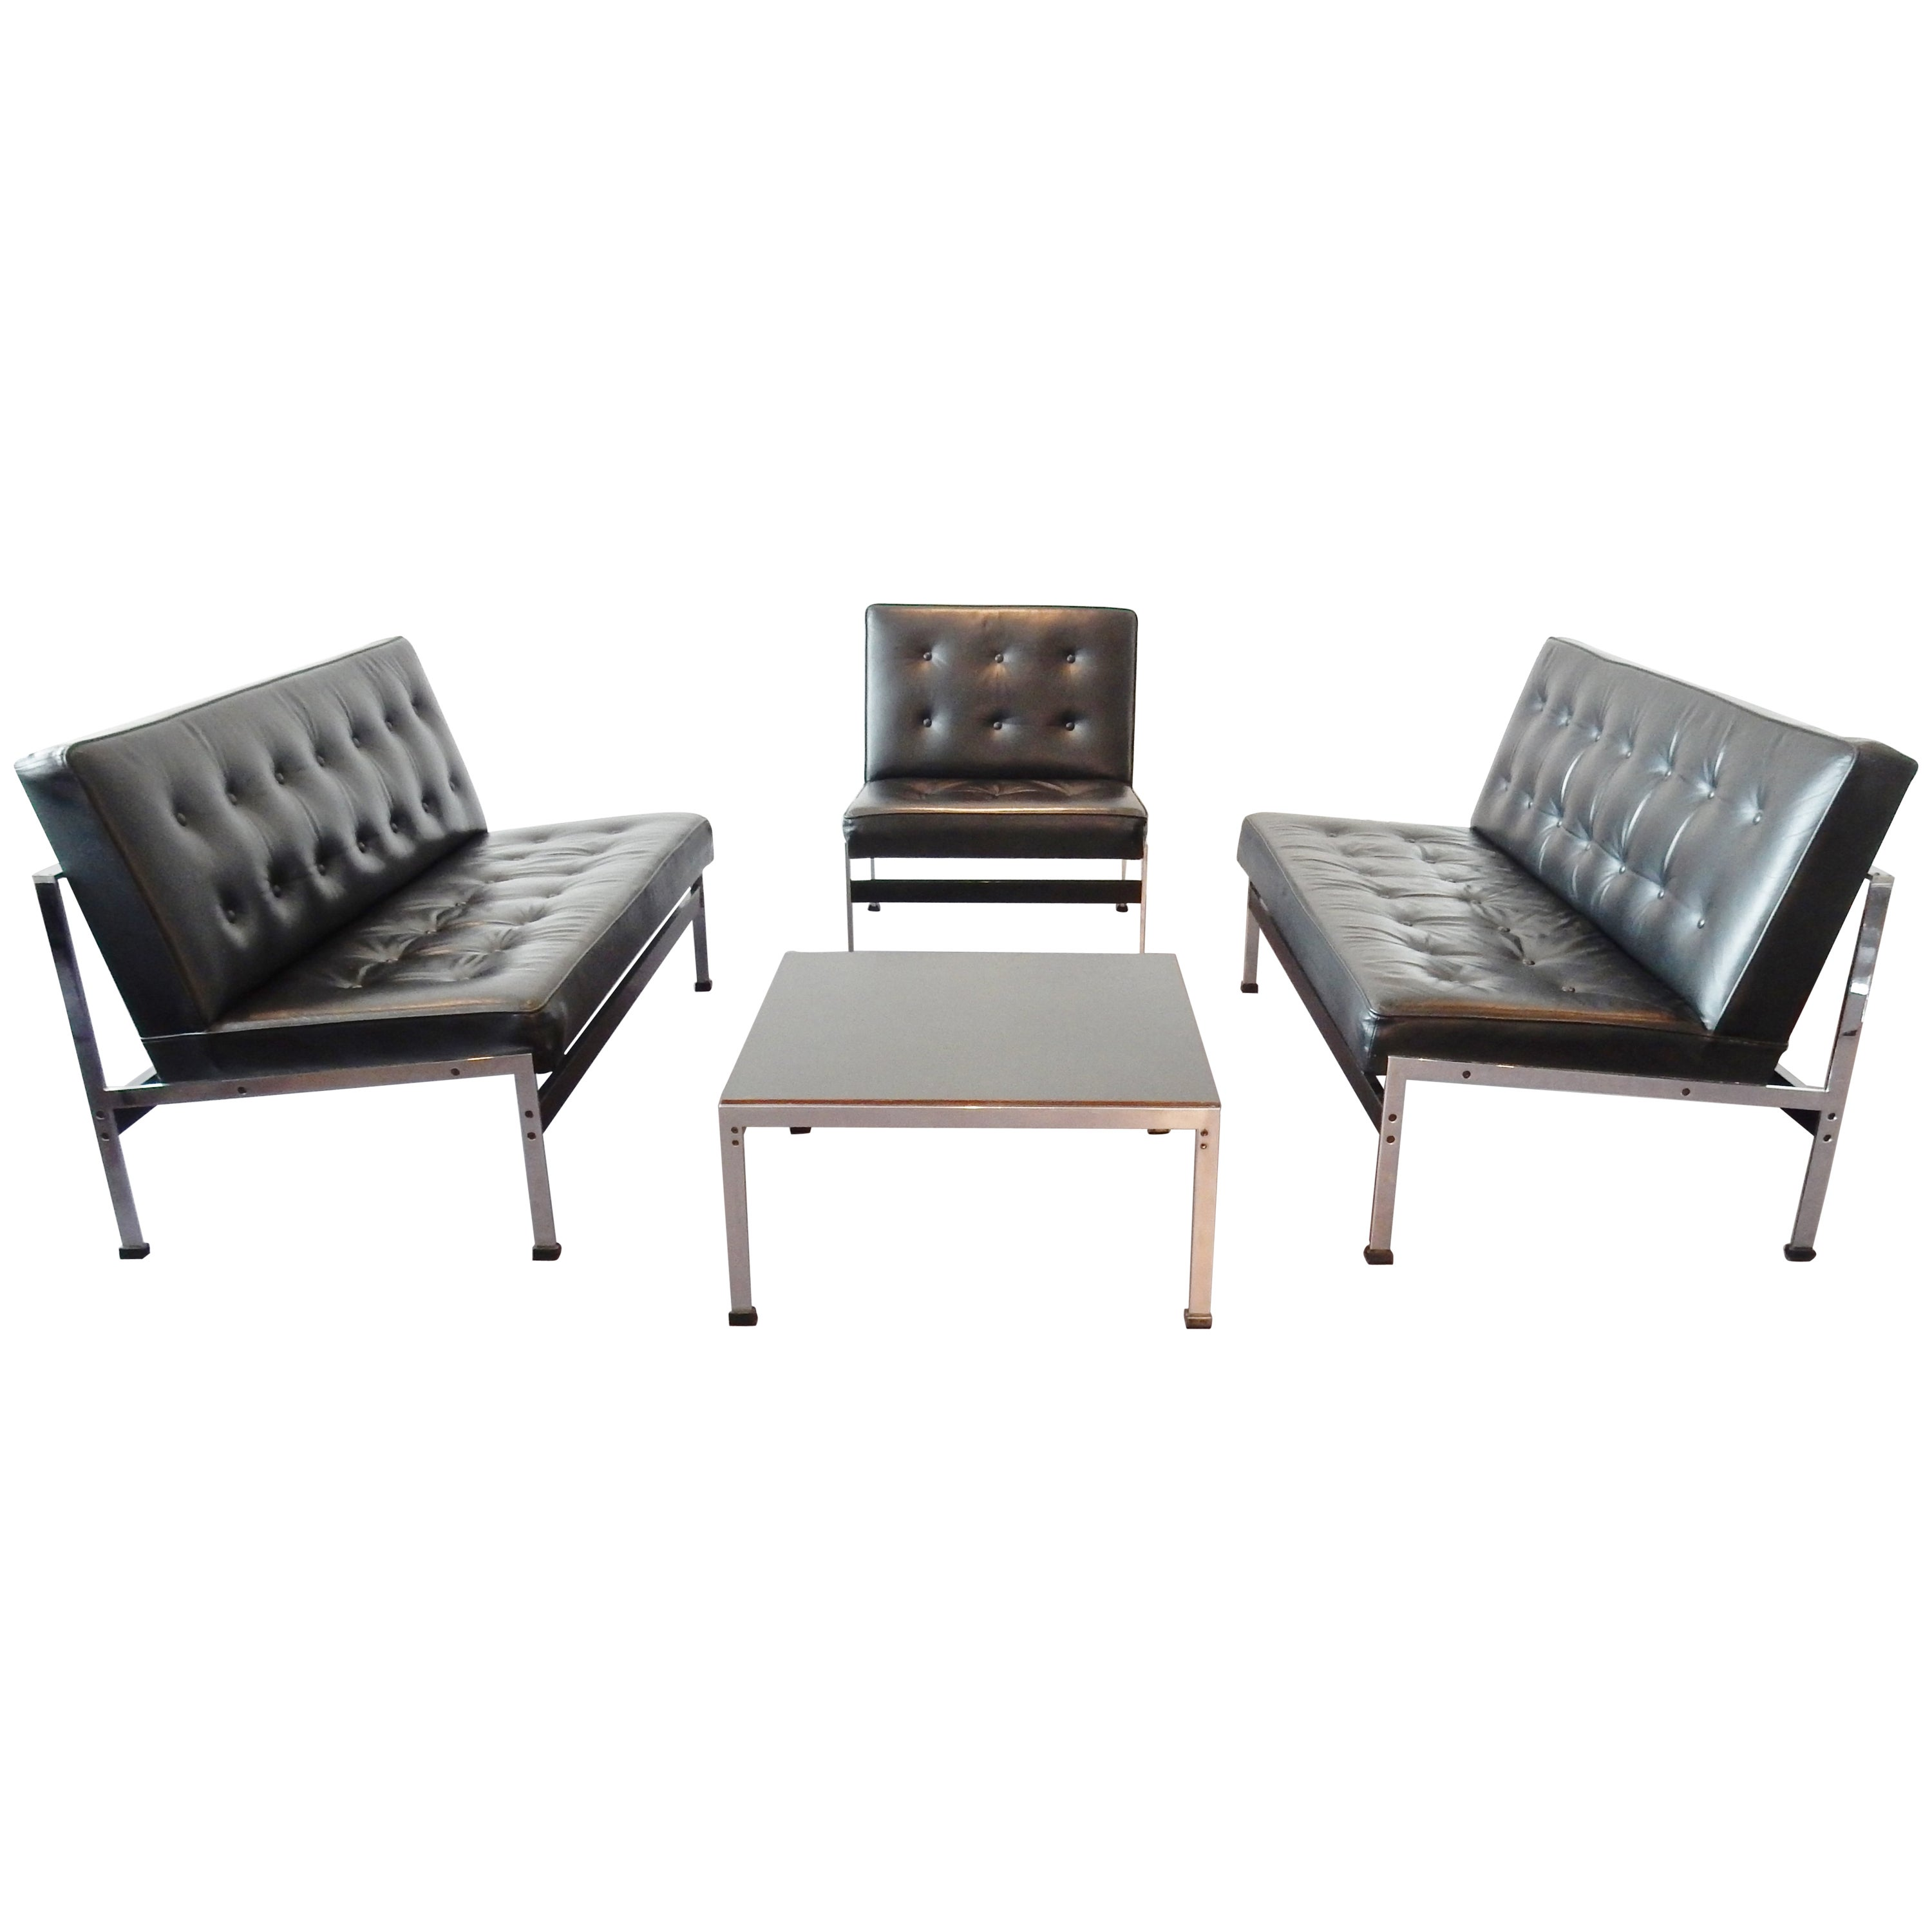 Rare '020 Series' Seating Group by Kho Liang Ie for Artifort, Netherlands, 1958